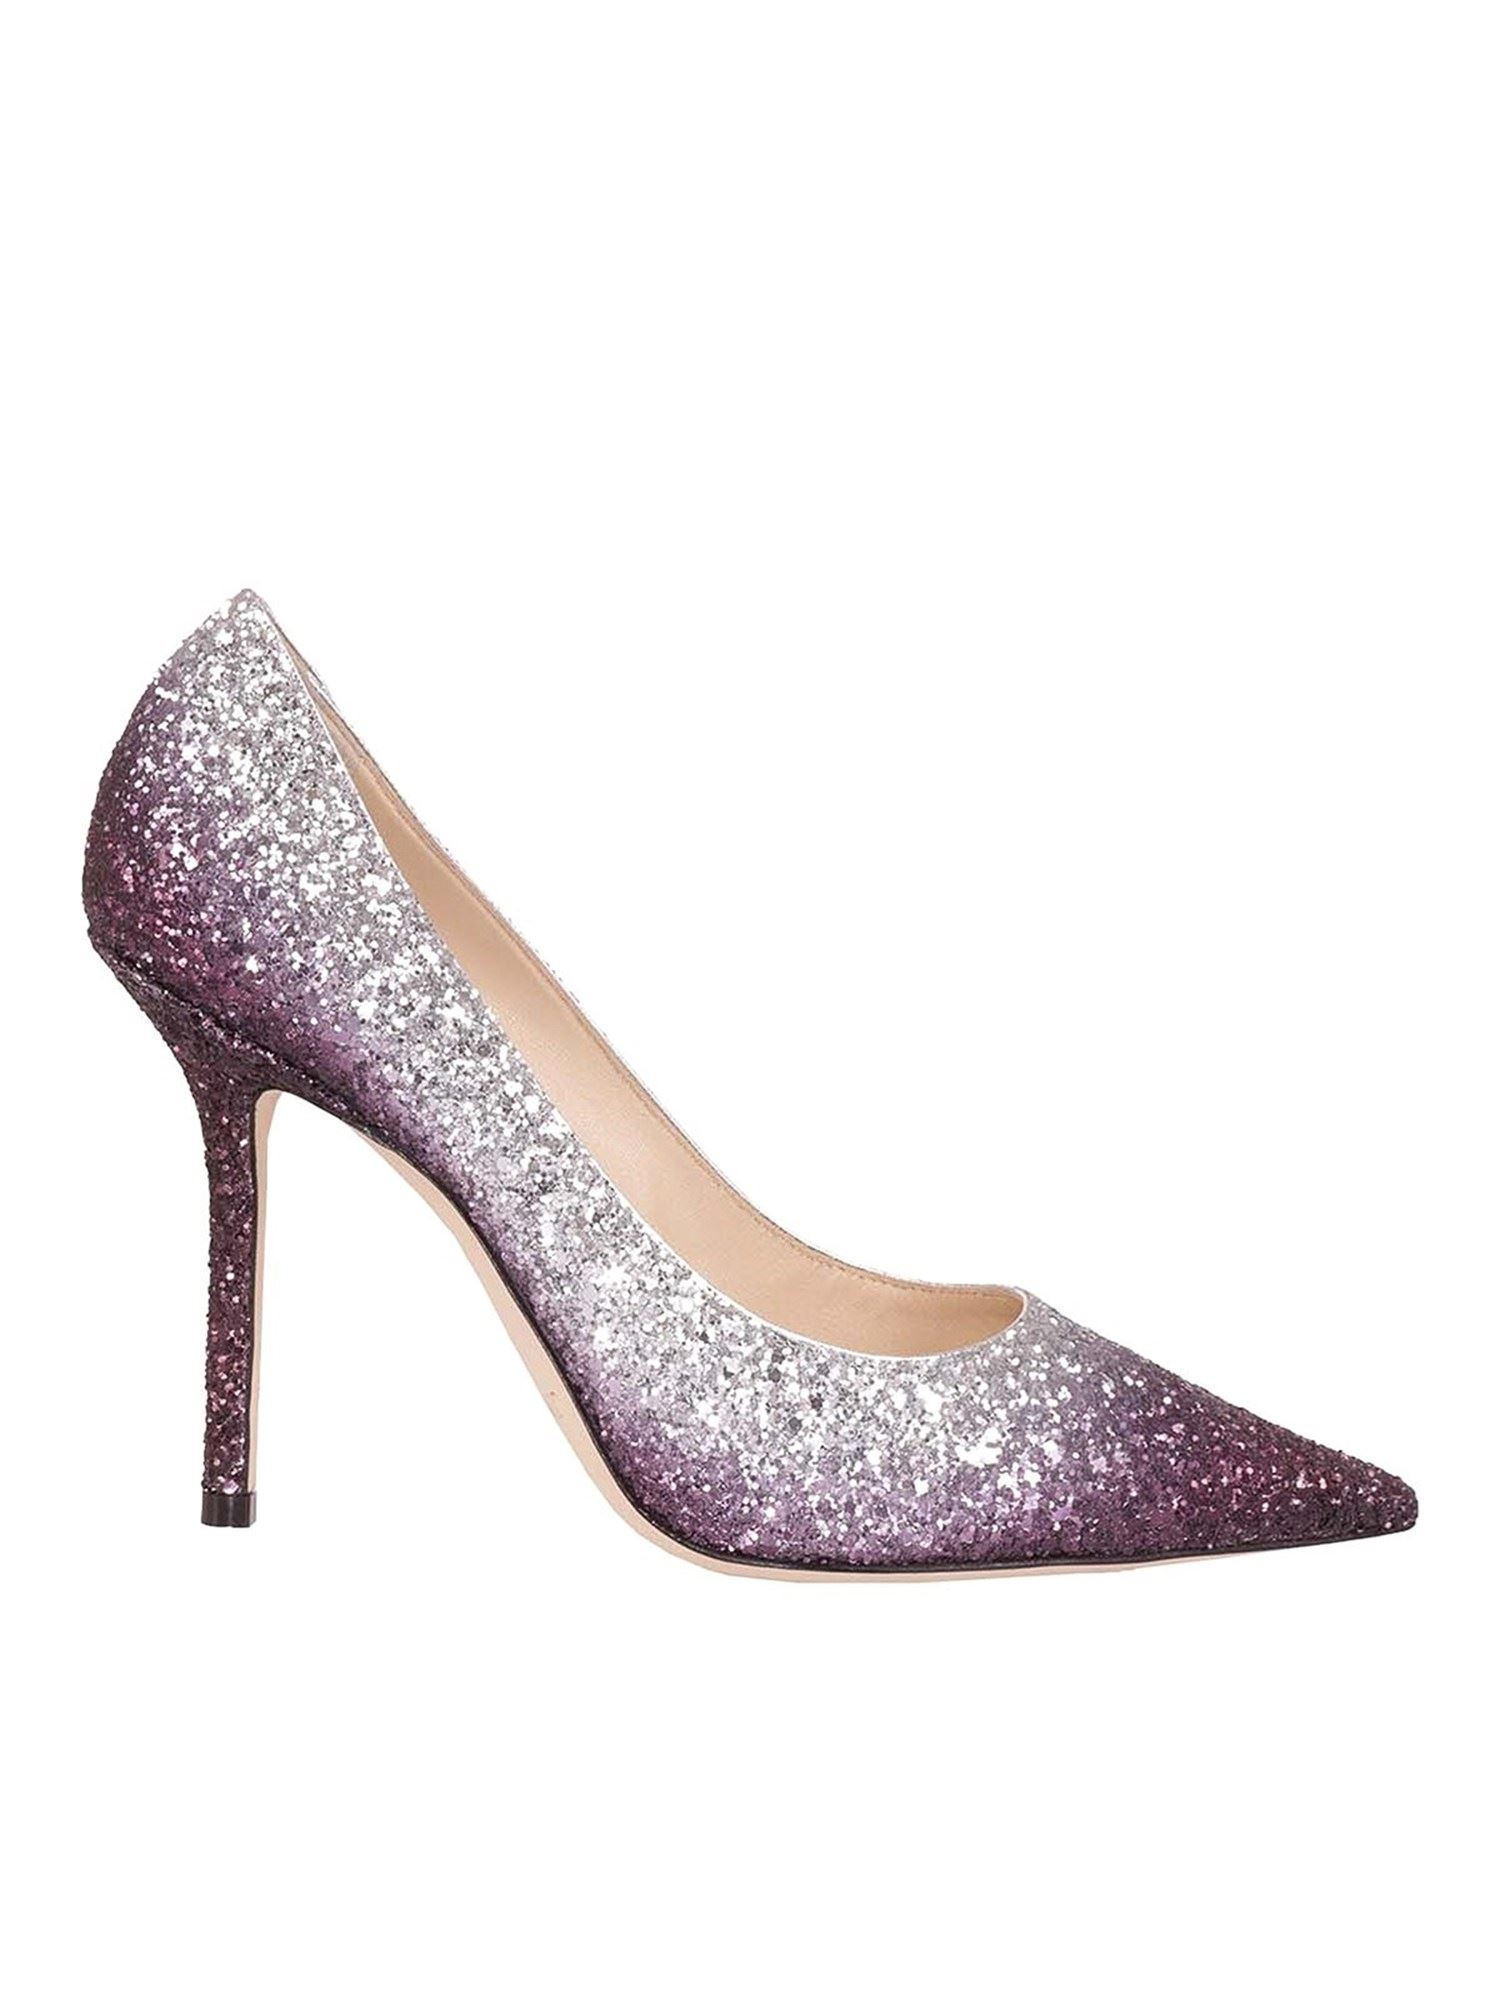 Jimmy Choo High heels LOVE 100 PUMPS IN SILVER COLOR